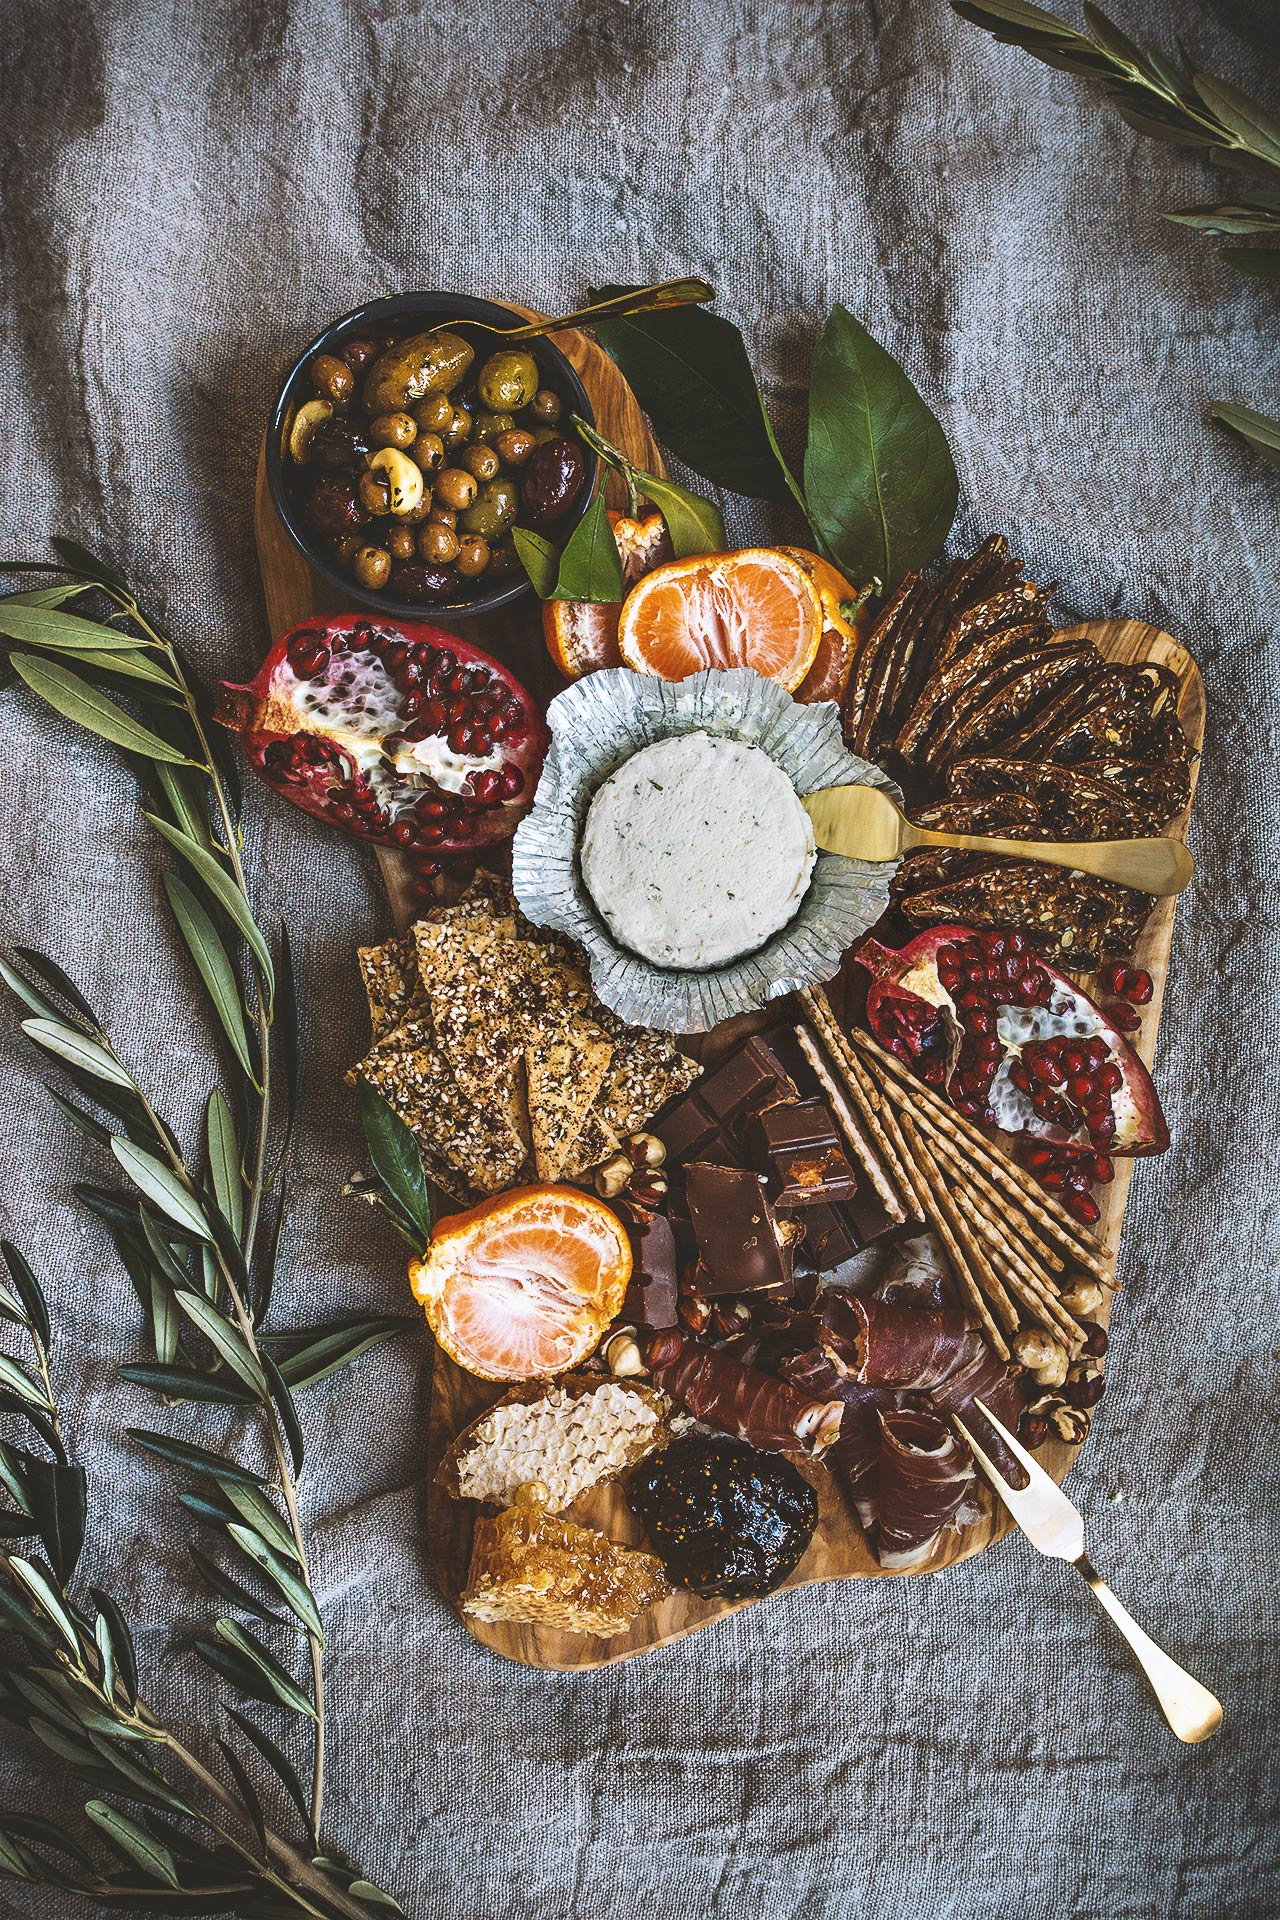 Boursin Cheese Platter | HonestlyYUM & Boursin Cheese Platter u2013 HonestlyYUM